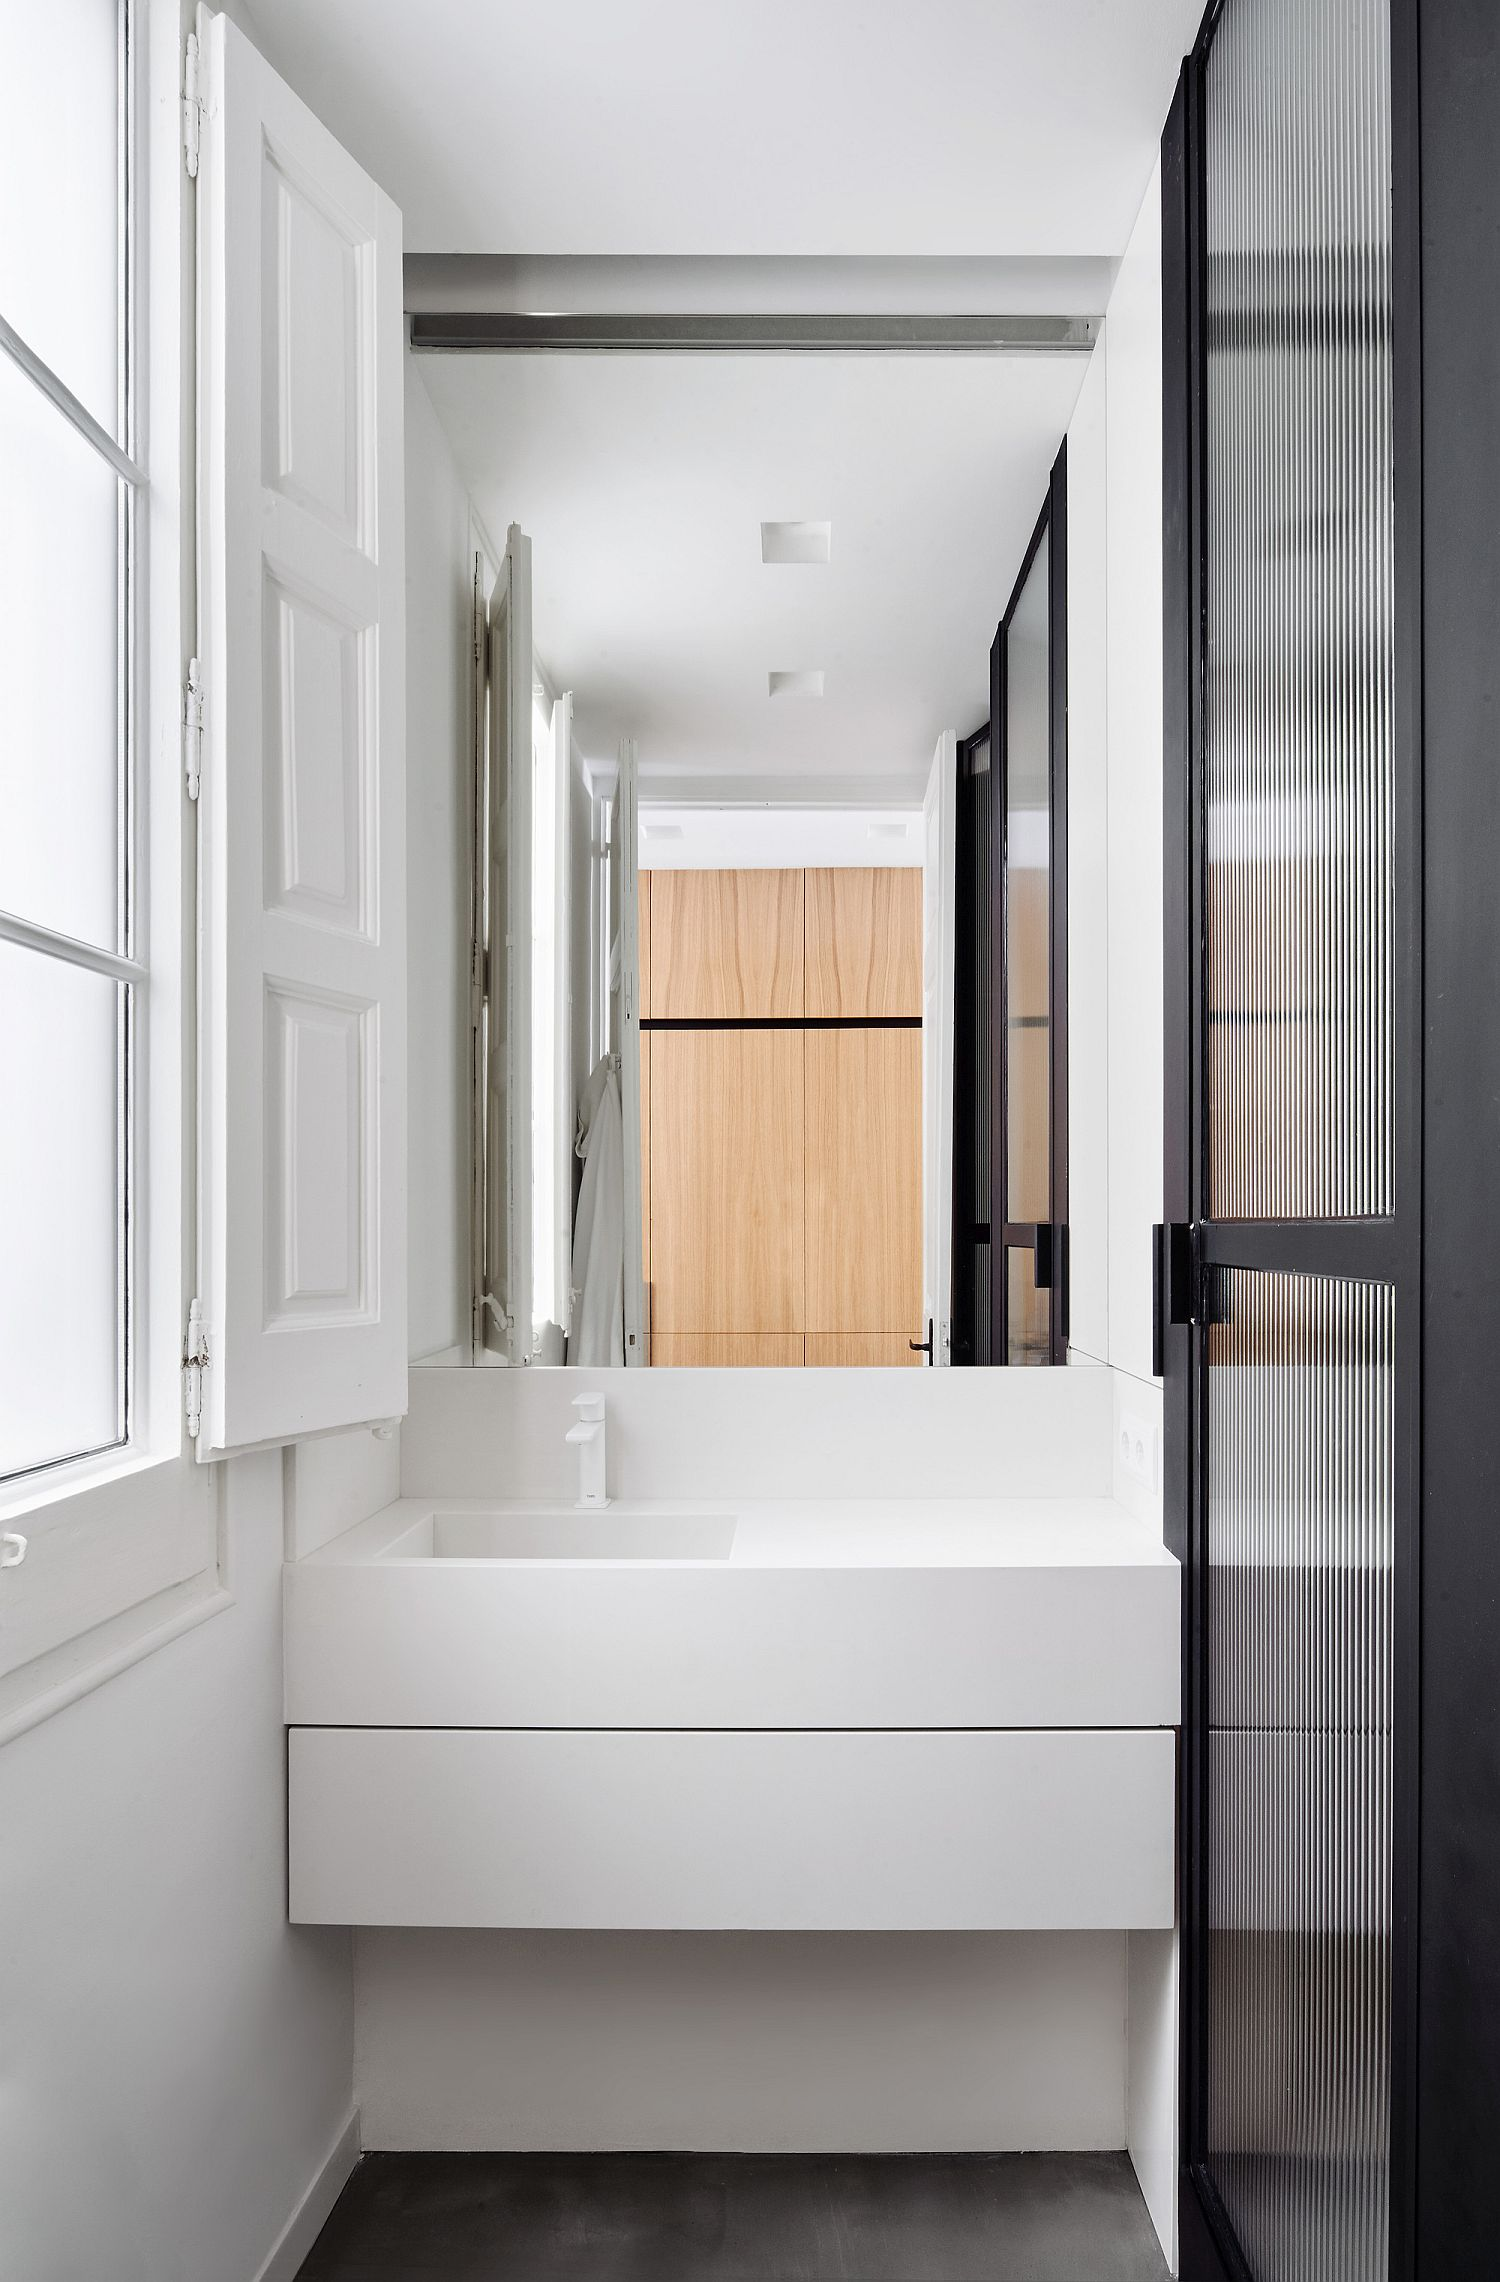 Ultra-tiny-contemporary-bathroom-in-white-with-wooden-accents